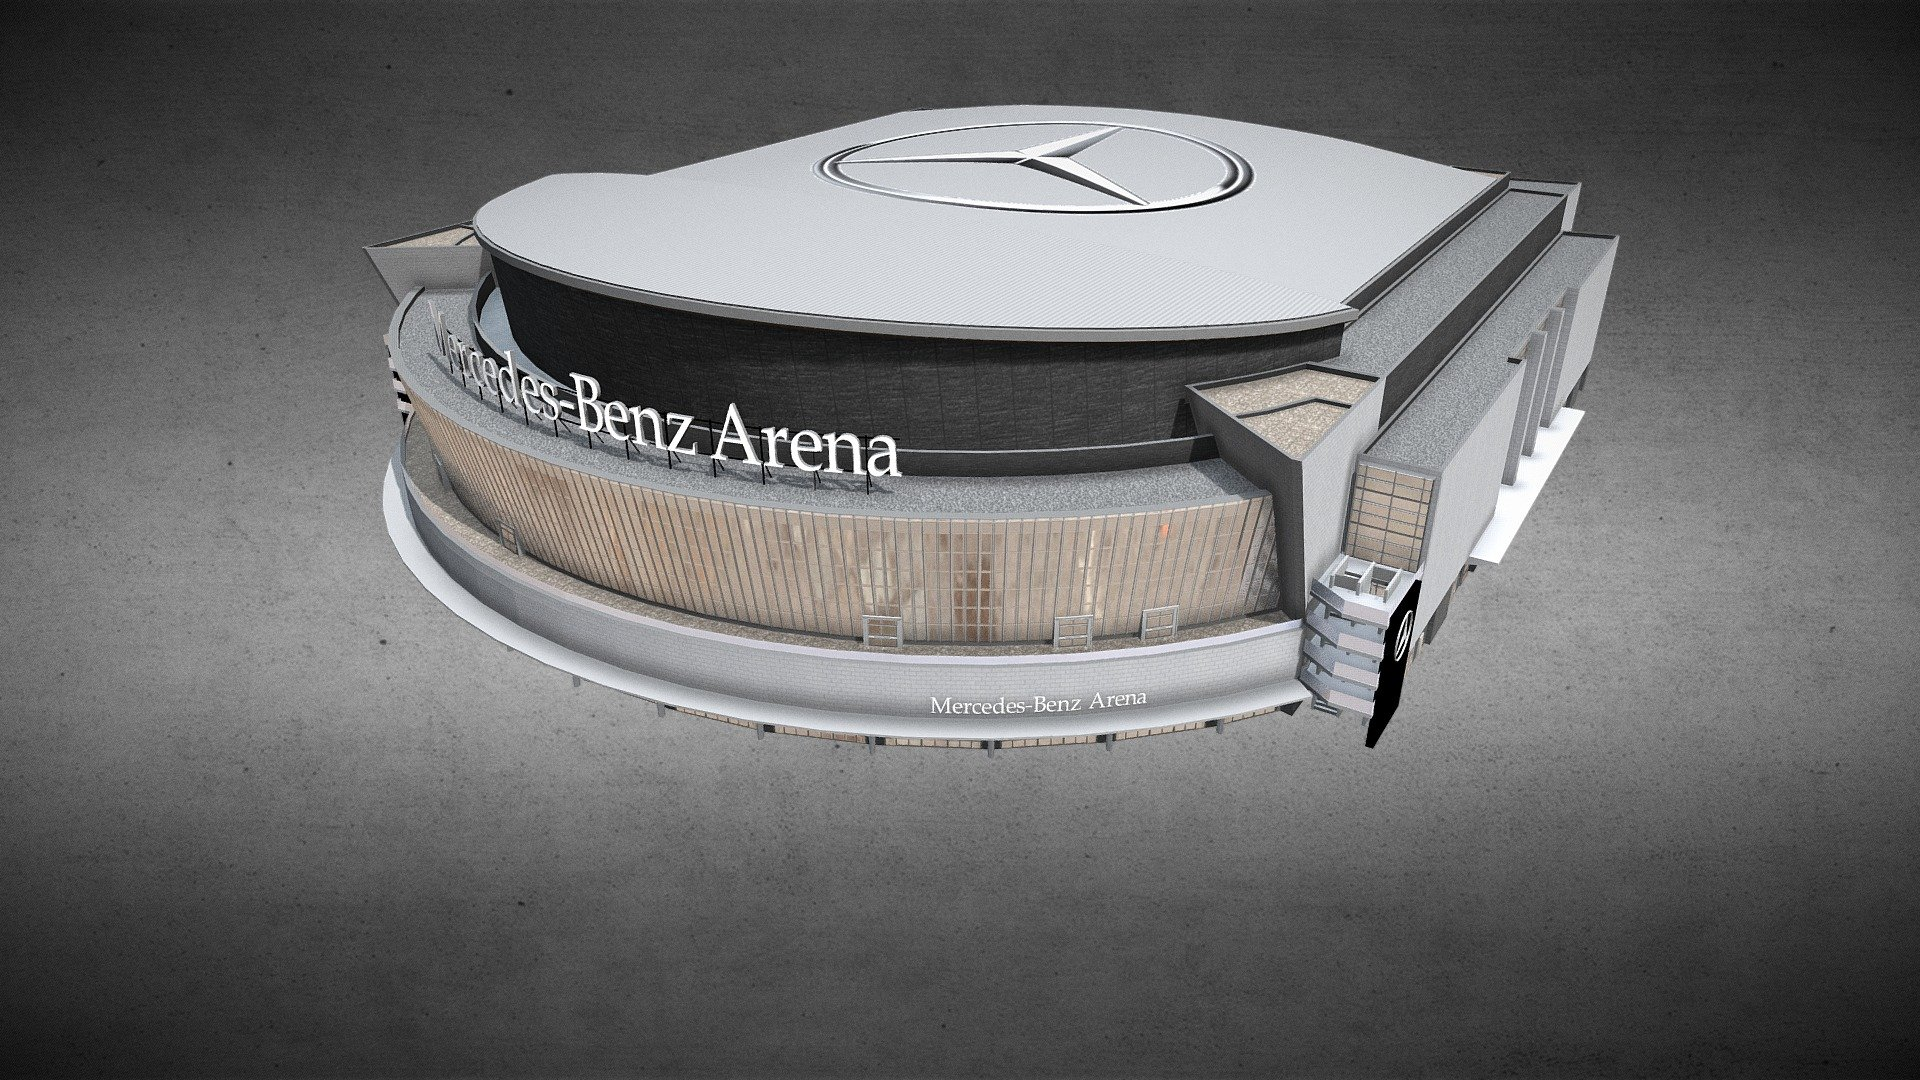 Everything you need to be ready to step out prepared. Mercedes Benz Arena Berlin Buy Royalty Free 3d Model By Luminou Cs Luminou A058e73